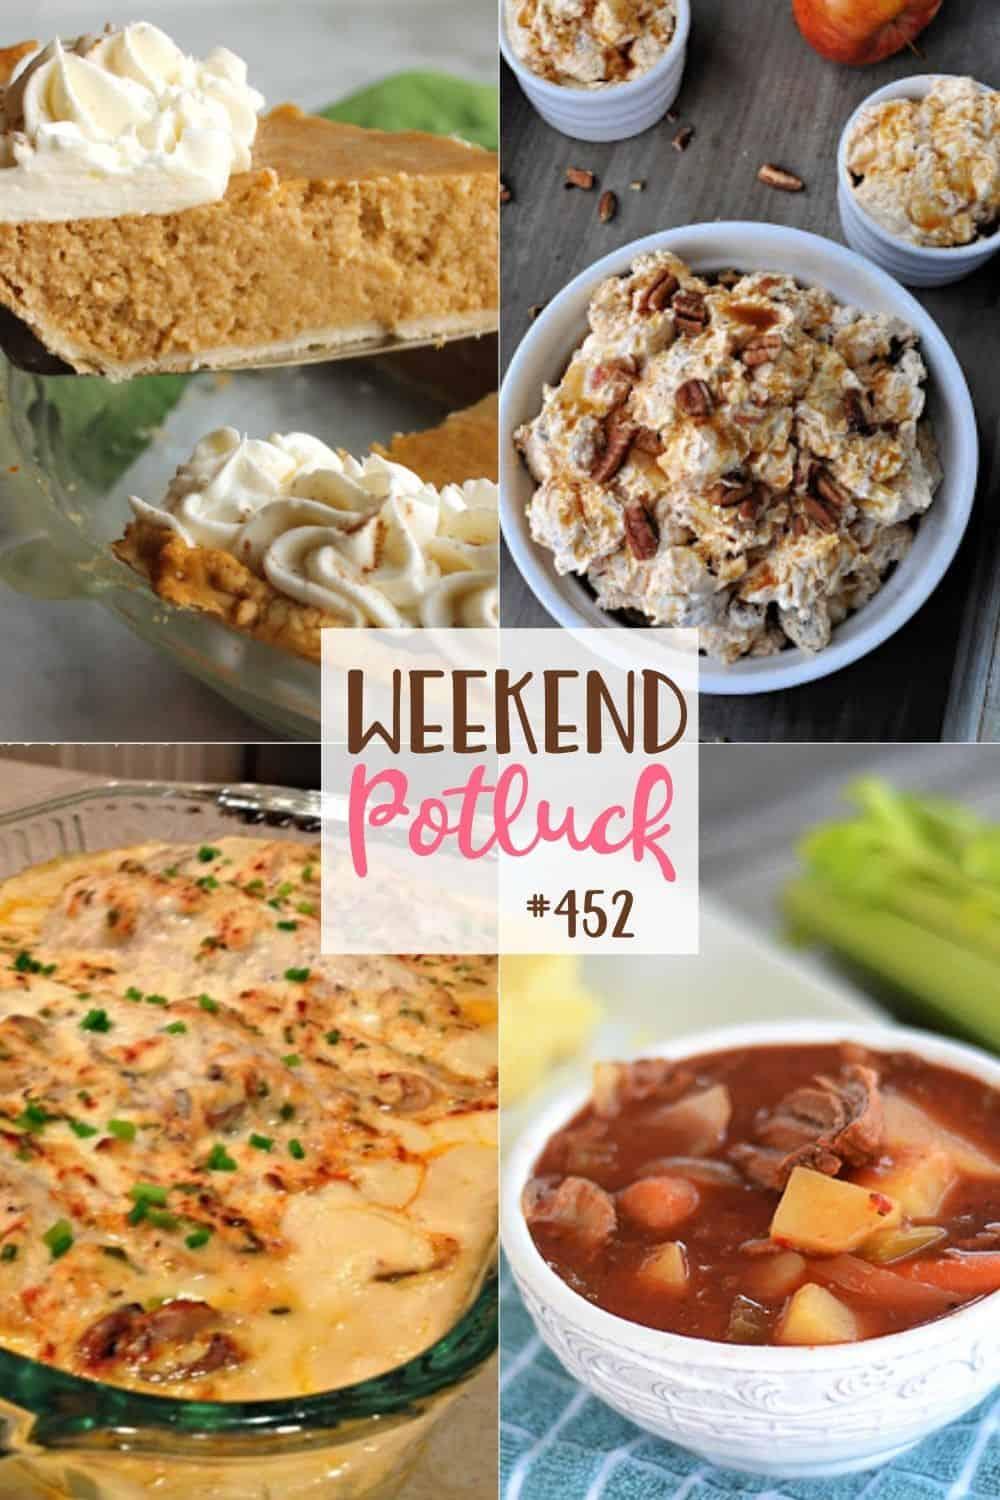 Weekend Potluck featured recipes include: Slow Cooker Beef Stew, Apple Butter Pie, Caramel Apple Fluff and Creamy Chicken Bake.